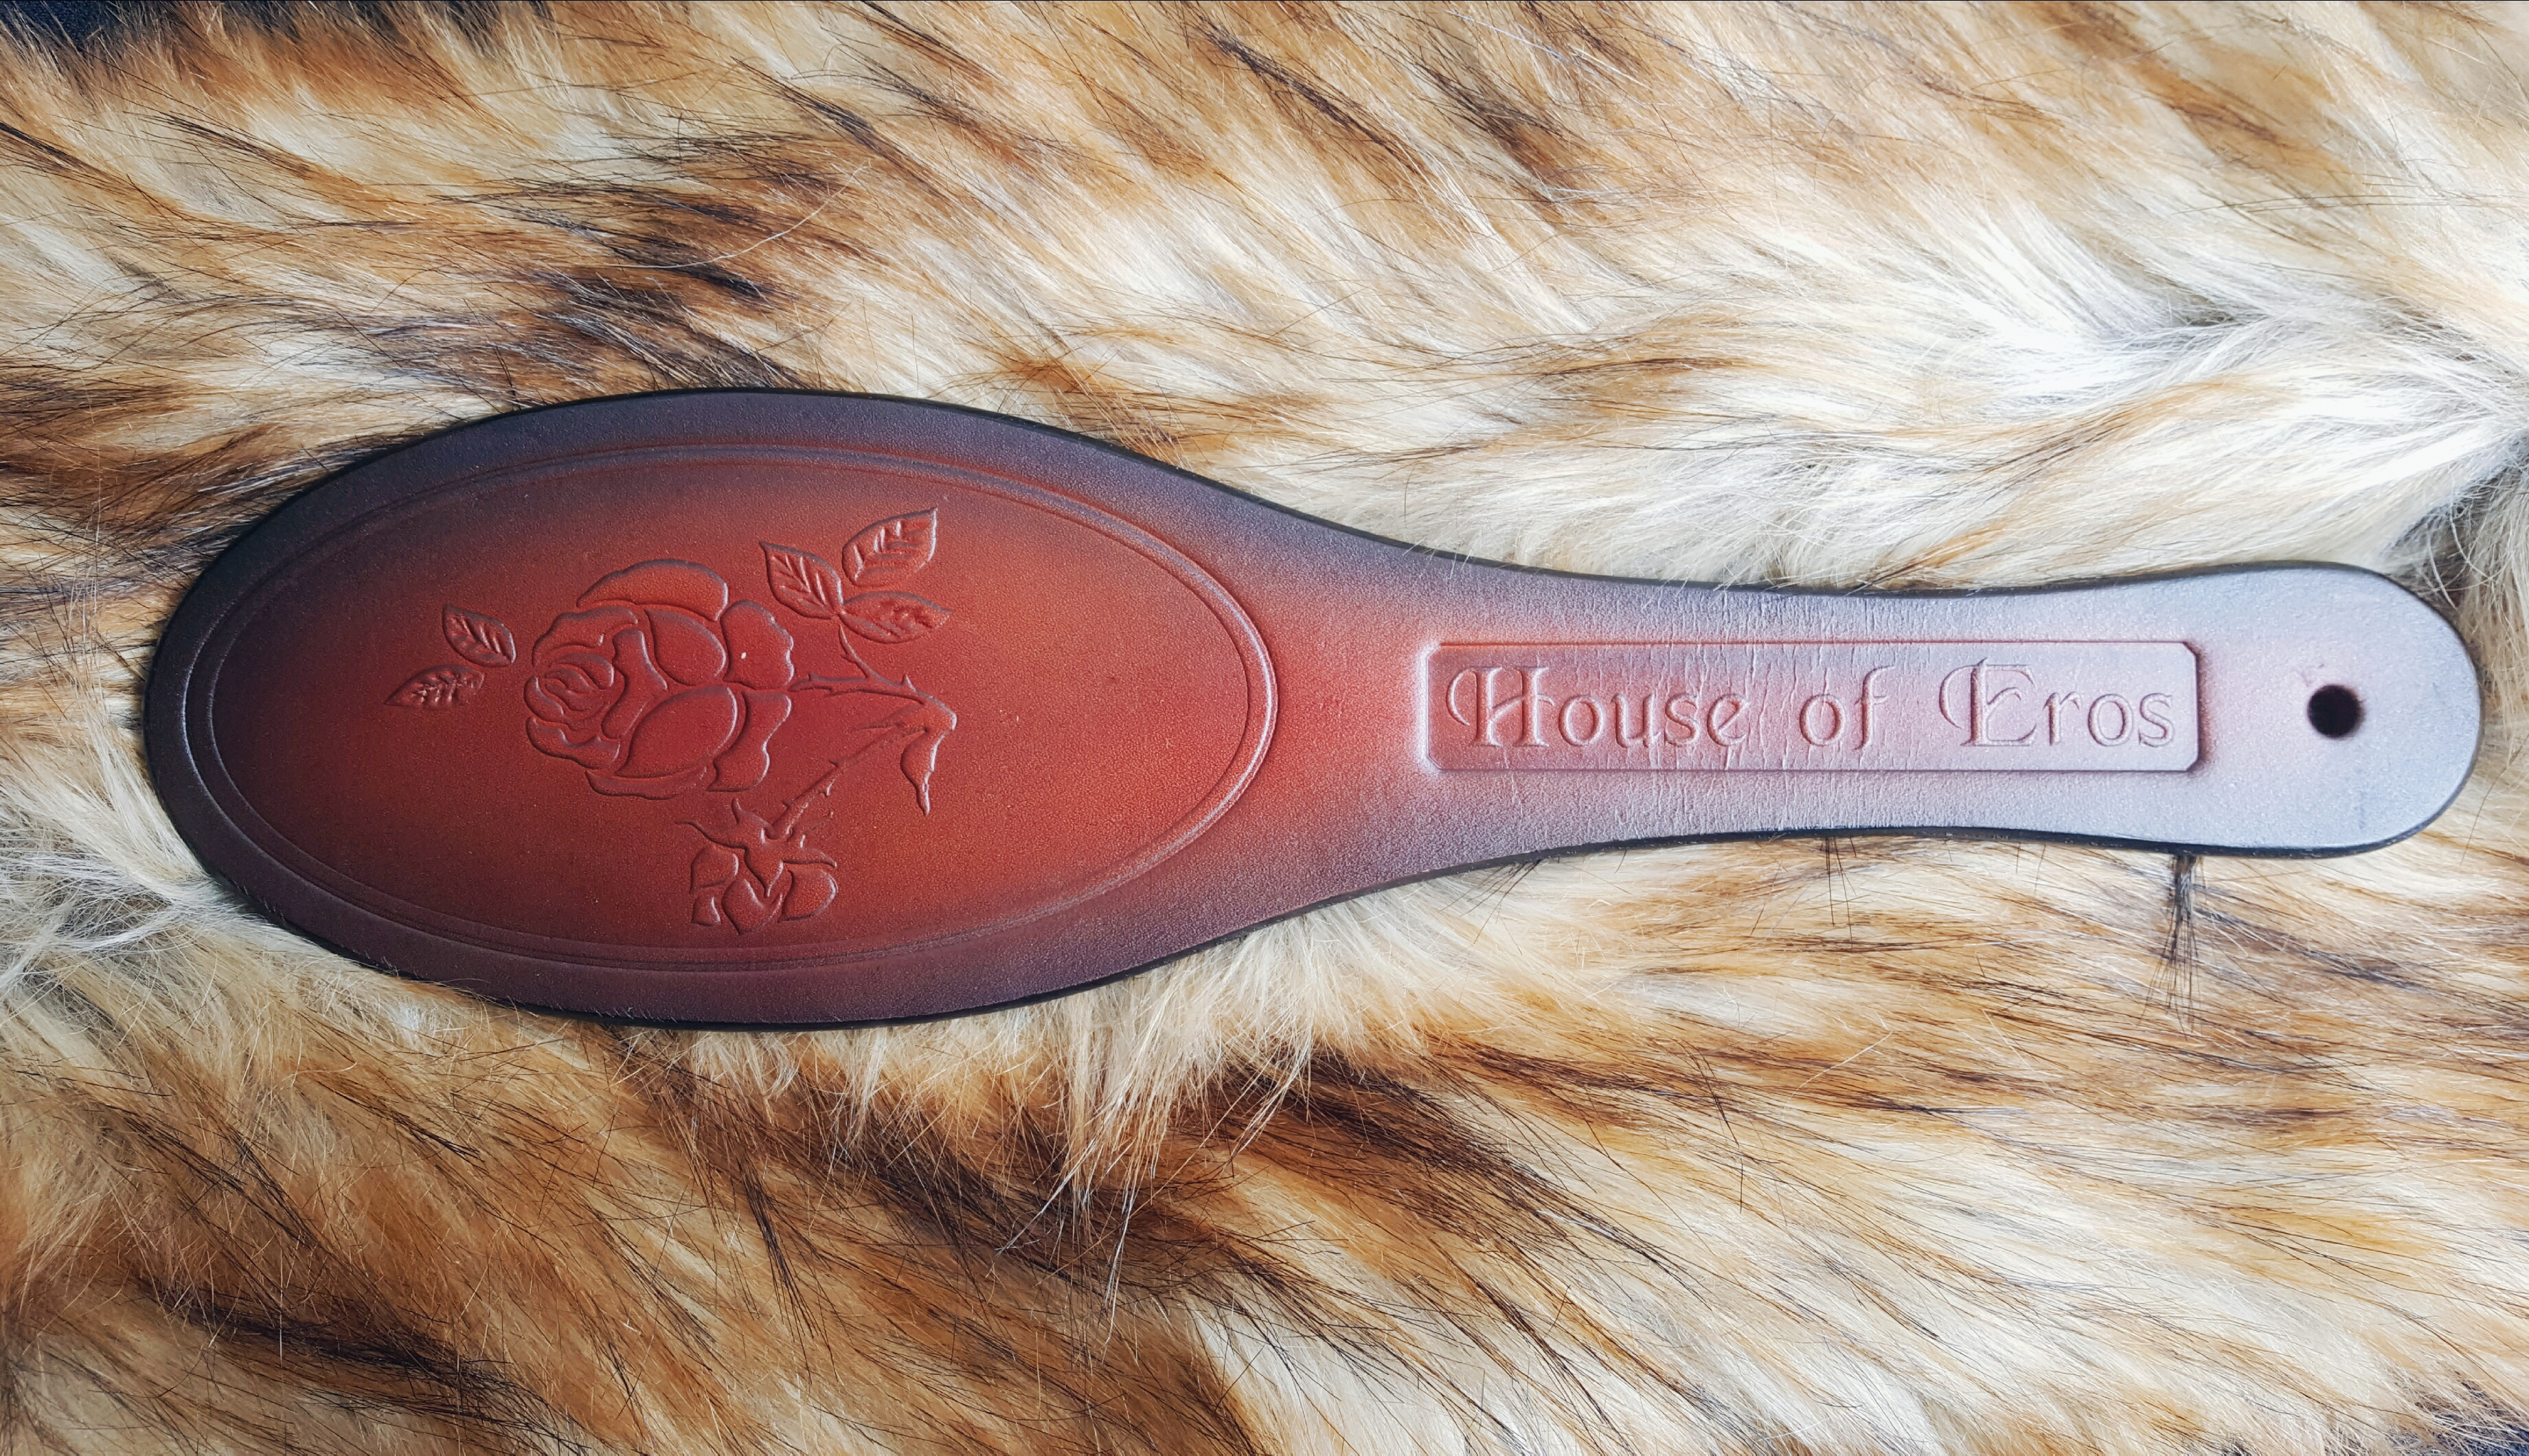 House of Eros Rose Pattern Shoe Paddle On Fur